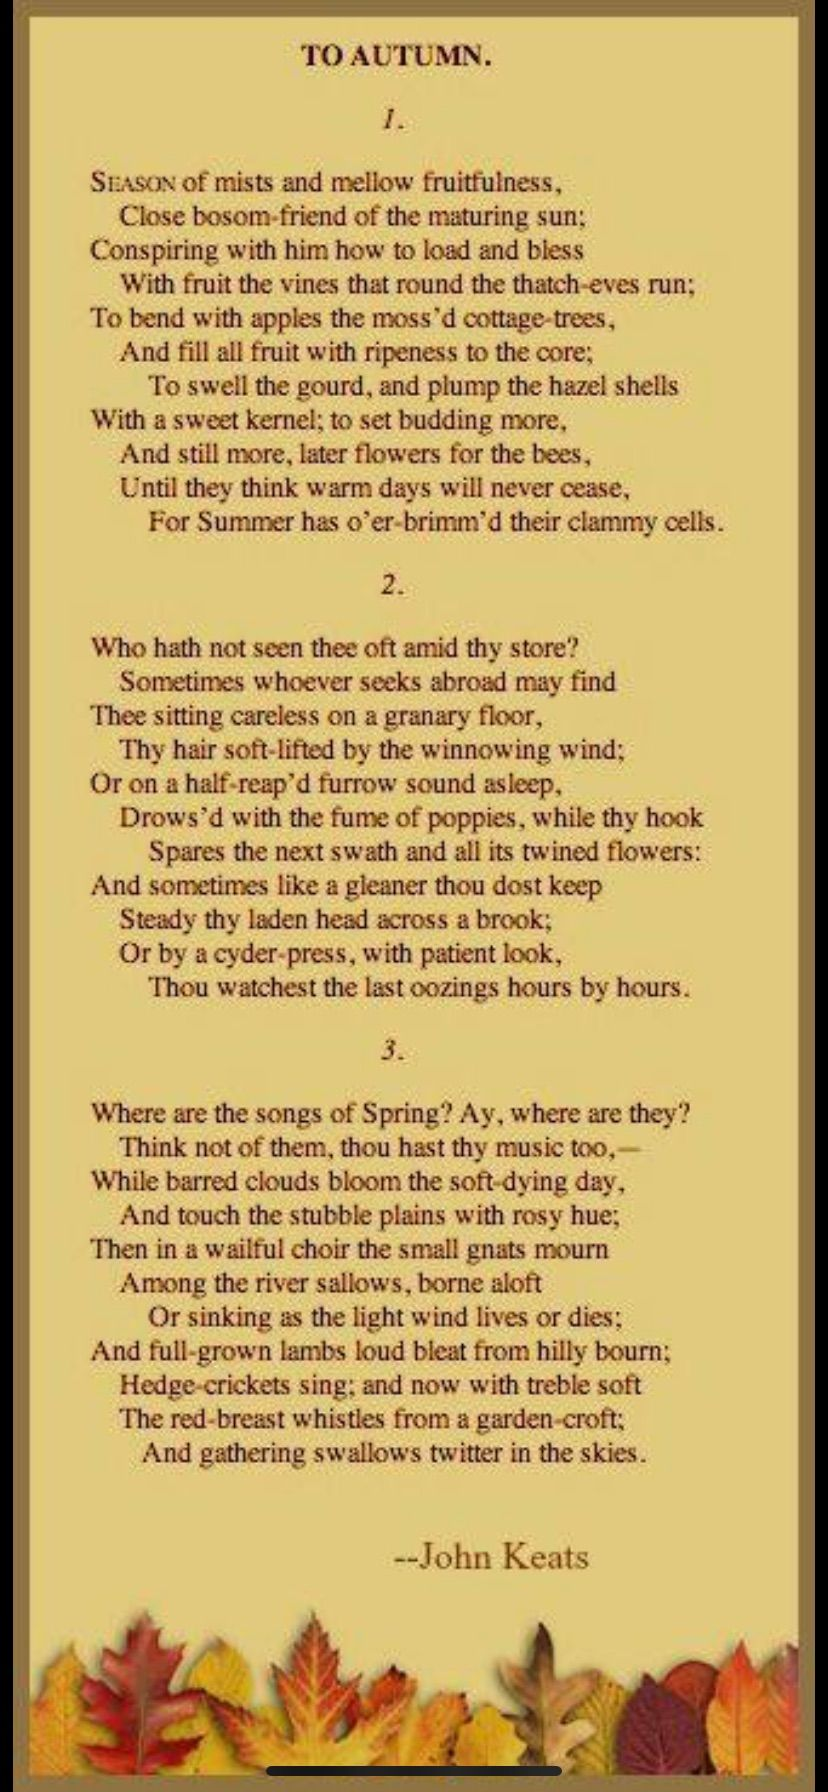 Pin By Edith Cheong On Poetry Keat To Autumn Poems Line Explanation Of The Poem Ode John Keats